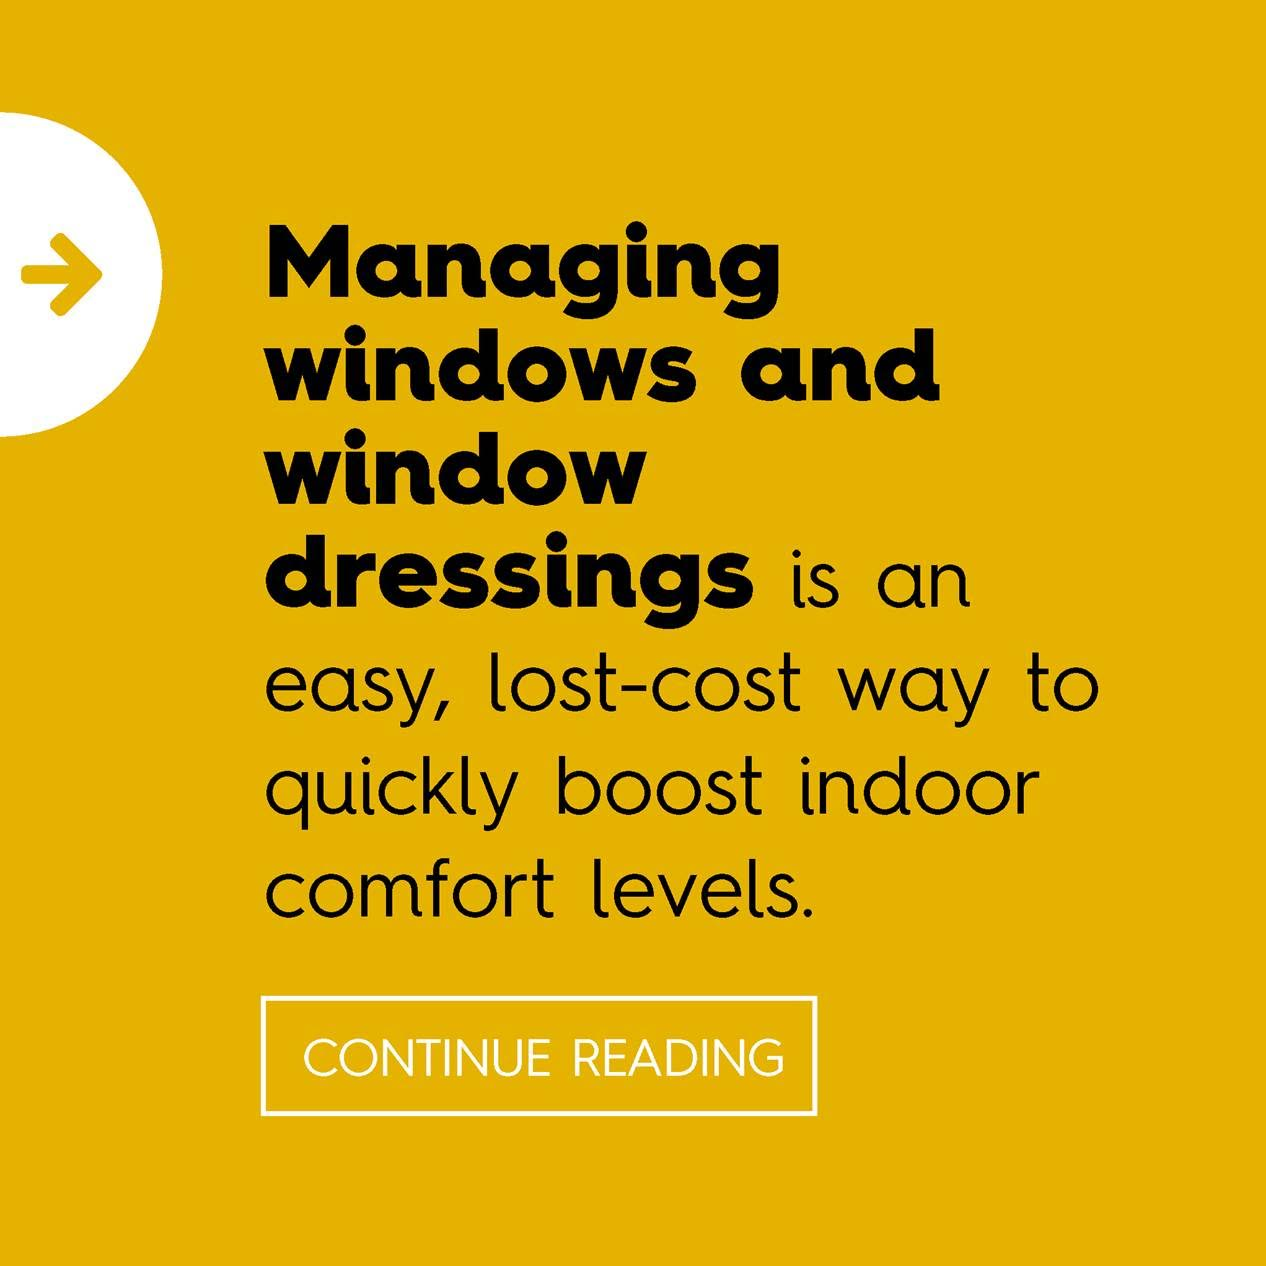 Managing windows and window dressings